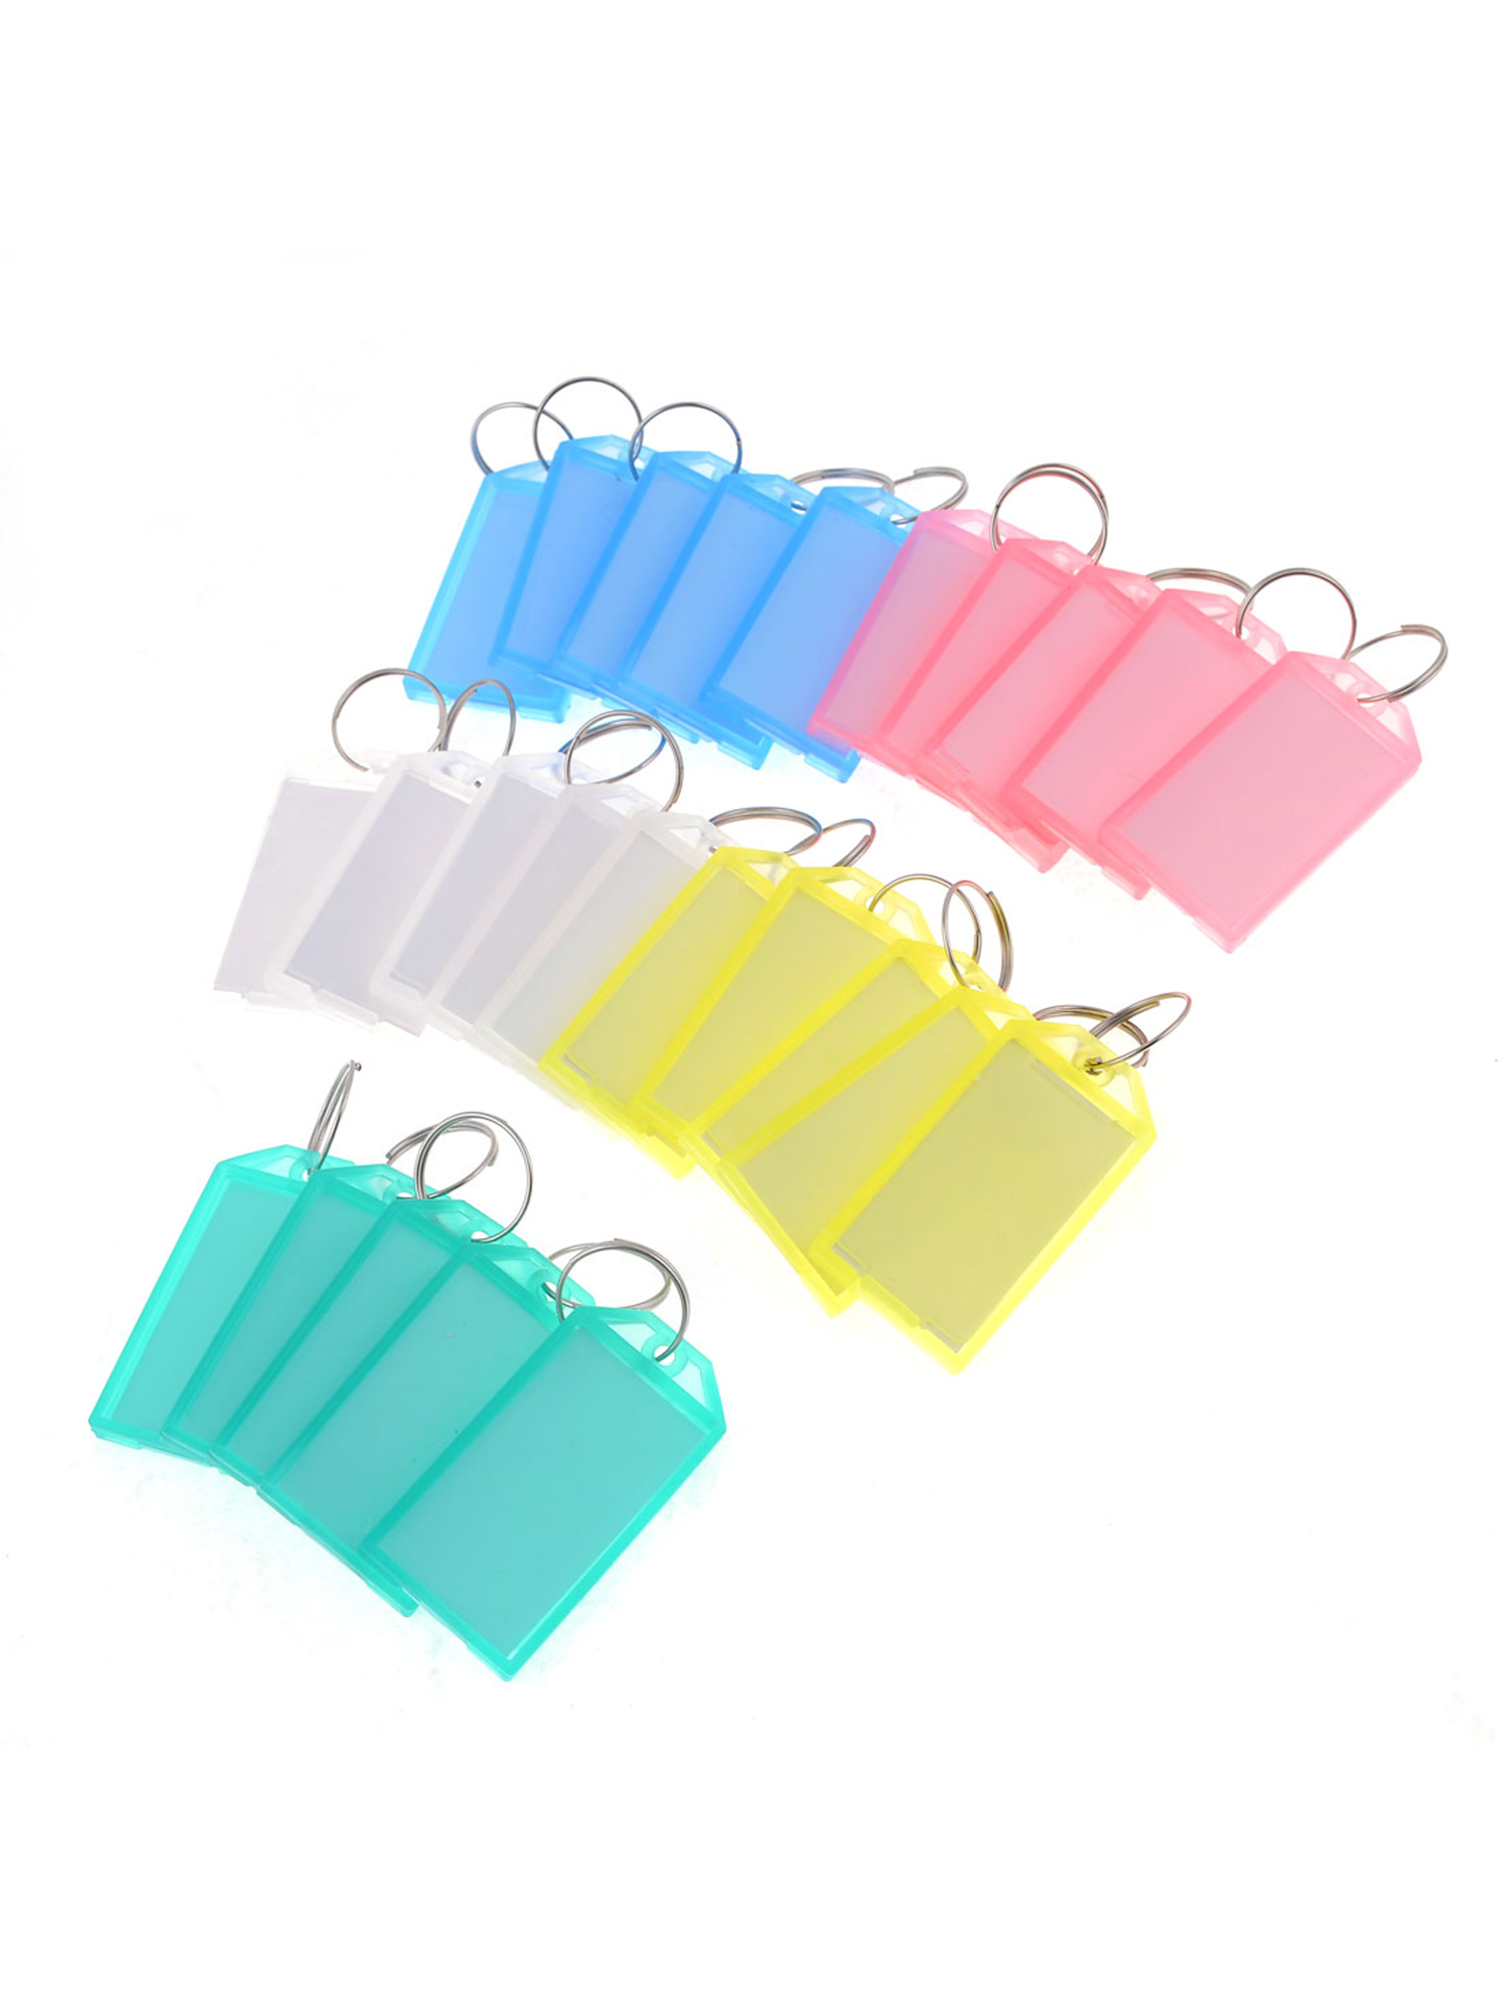 25 Pcs Colored Plastic Rectangle Keychain Key Tags ID Label Name Tag Ring